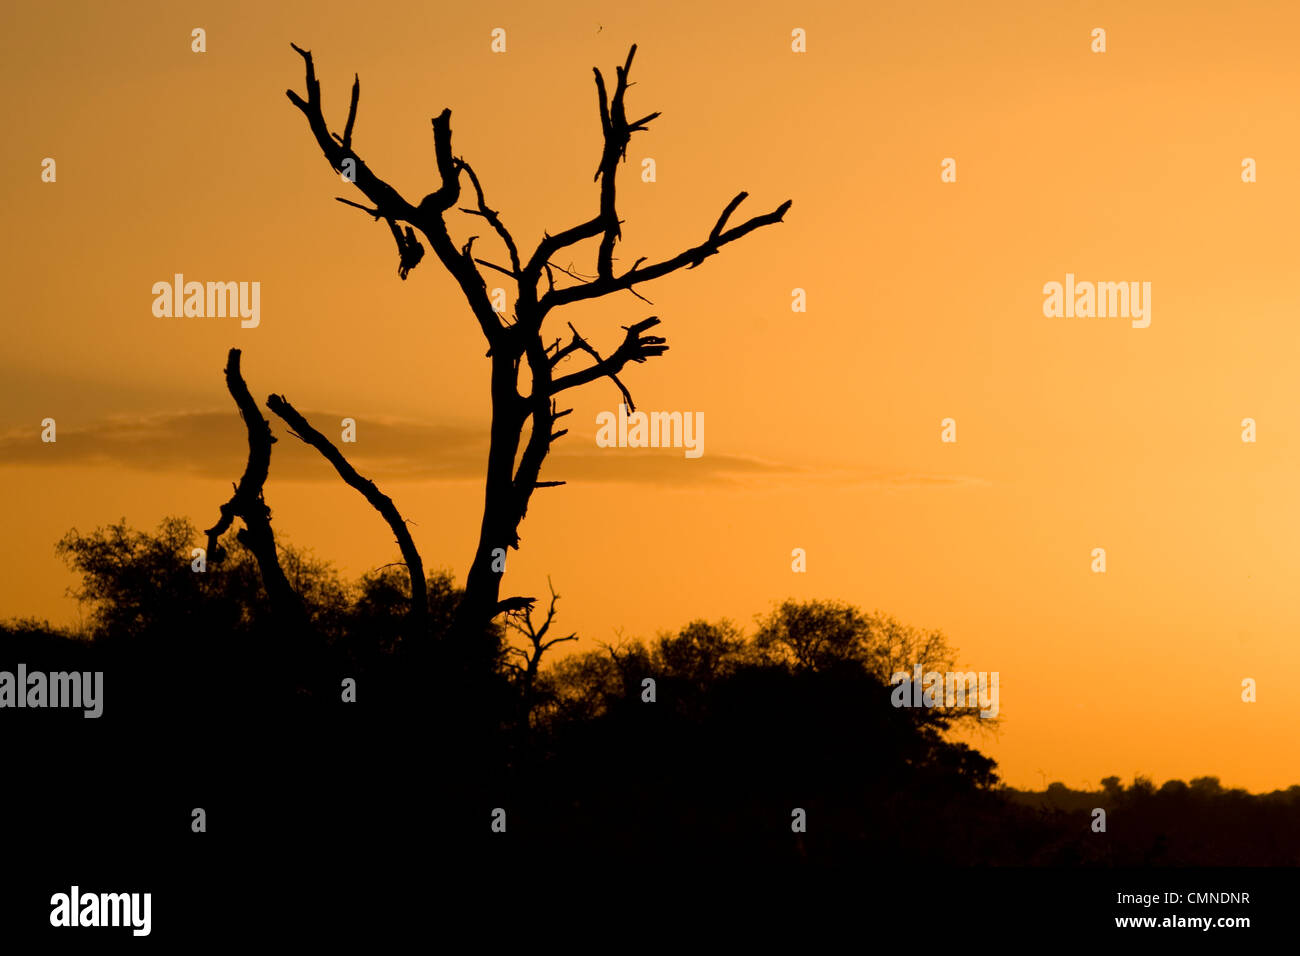 Sunset over the African bushveld in the Kruger National Park, South Africa. - Stock Image